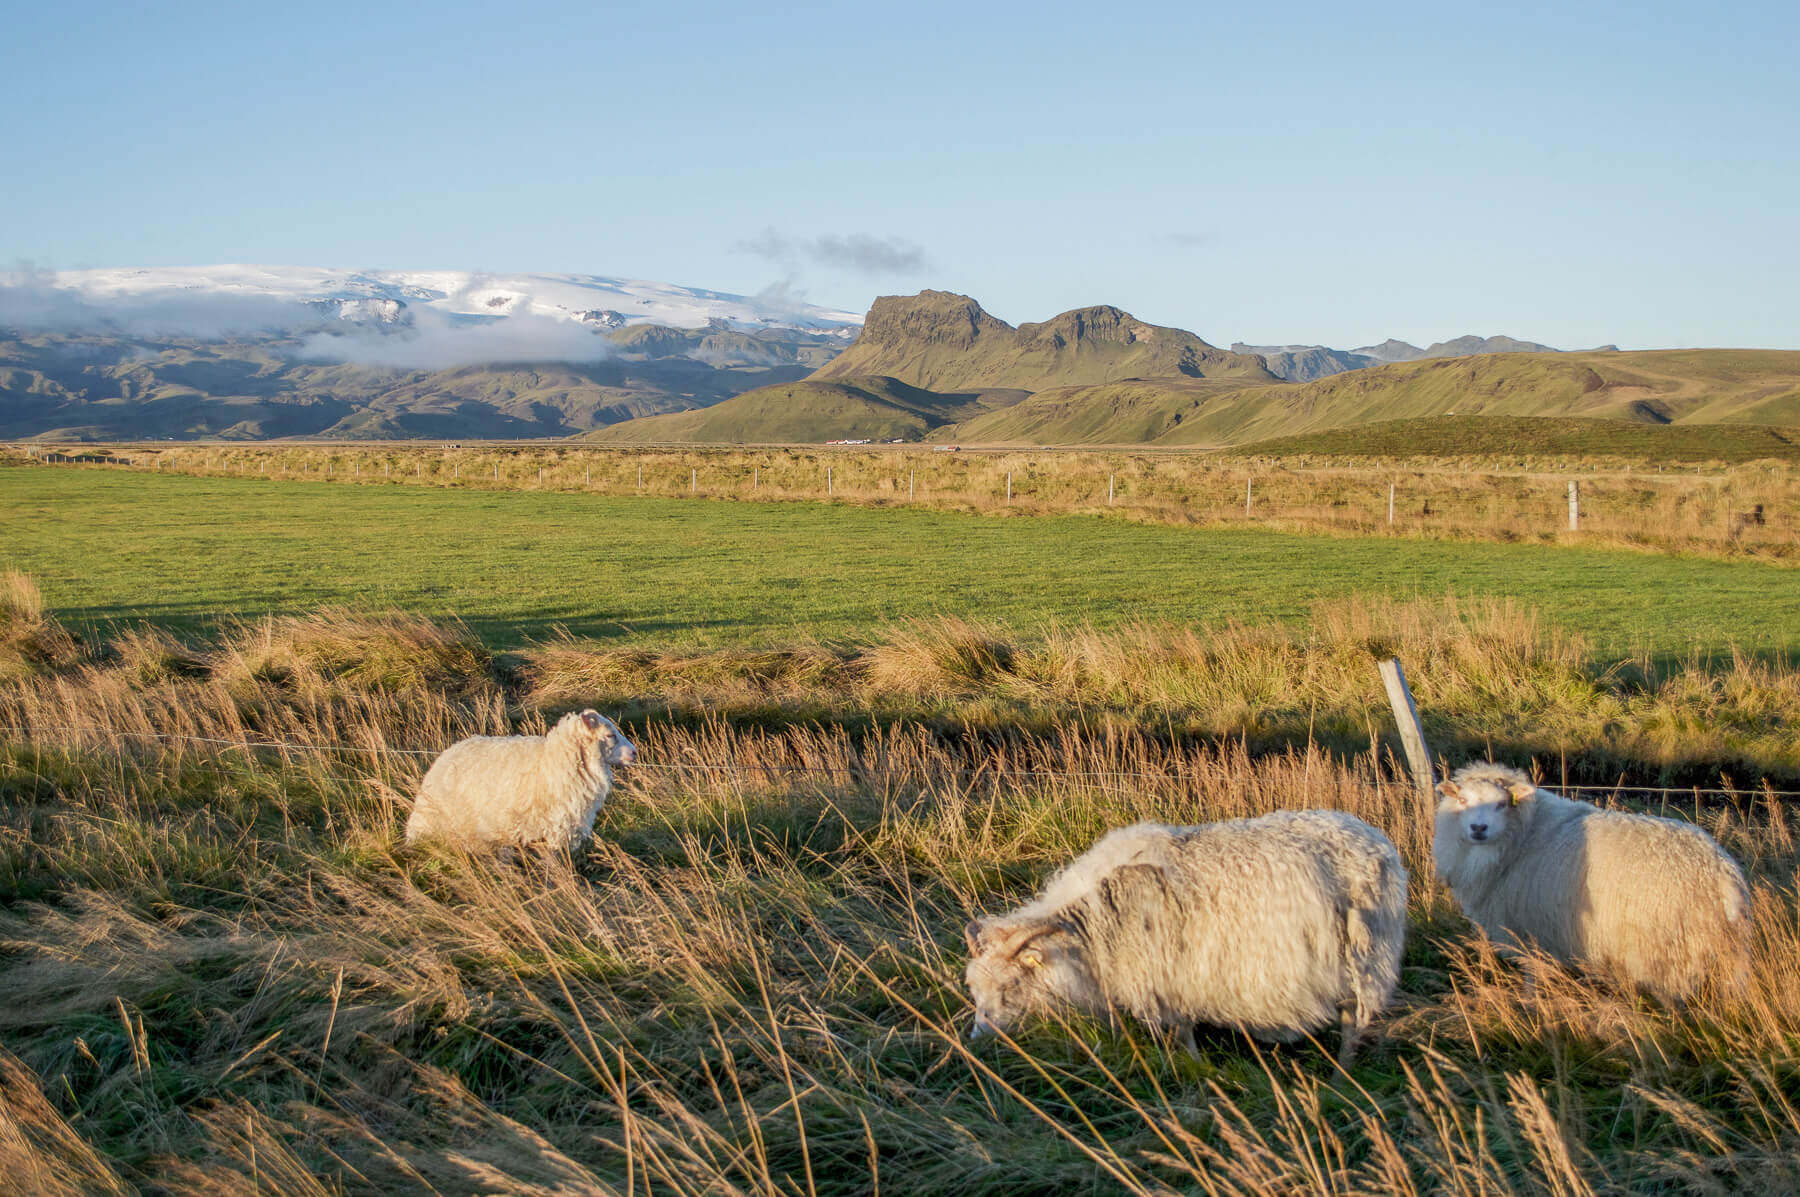 Which sheep grazing in a field in front of mountains in Iceland